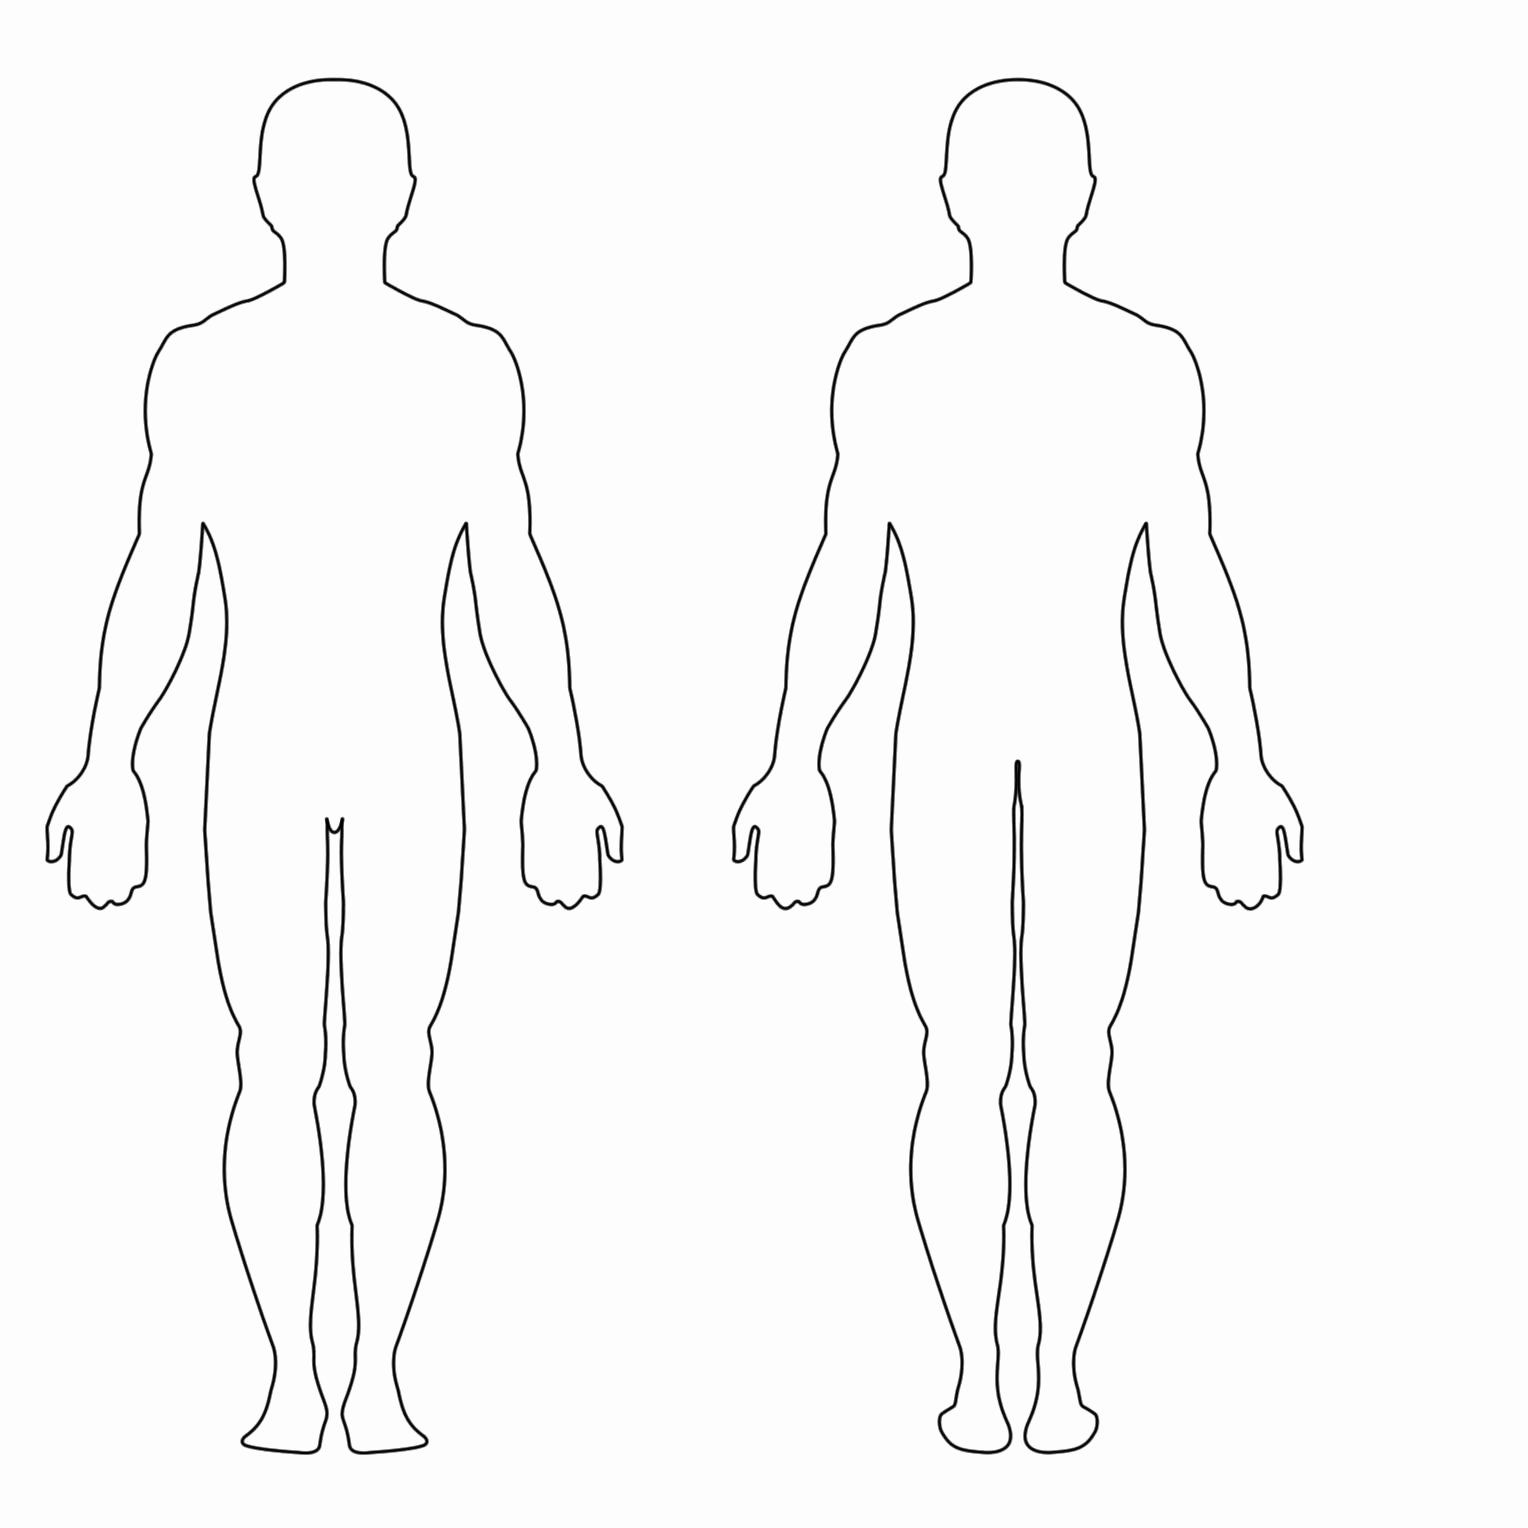 Human Silhouette Drawing Book Inspirational Free Human Body Outline Printable Download Free Clip Art In 2020 Body Outline Free Human Body Body Template